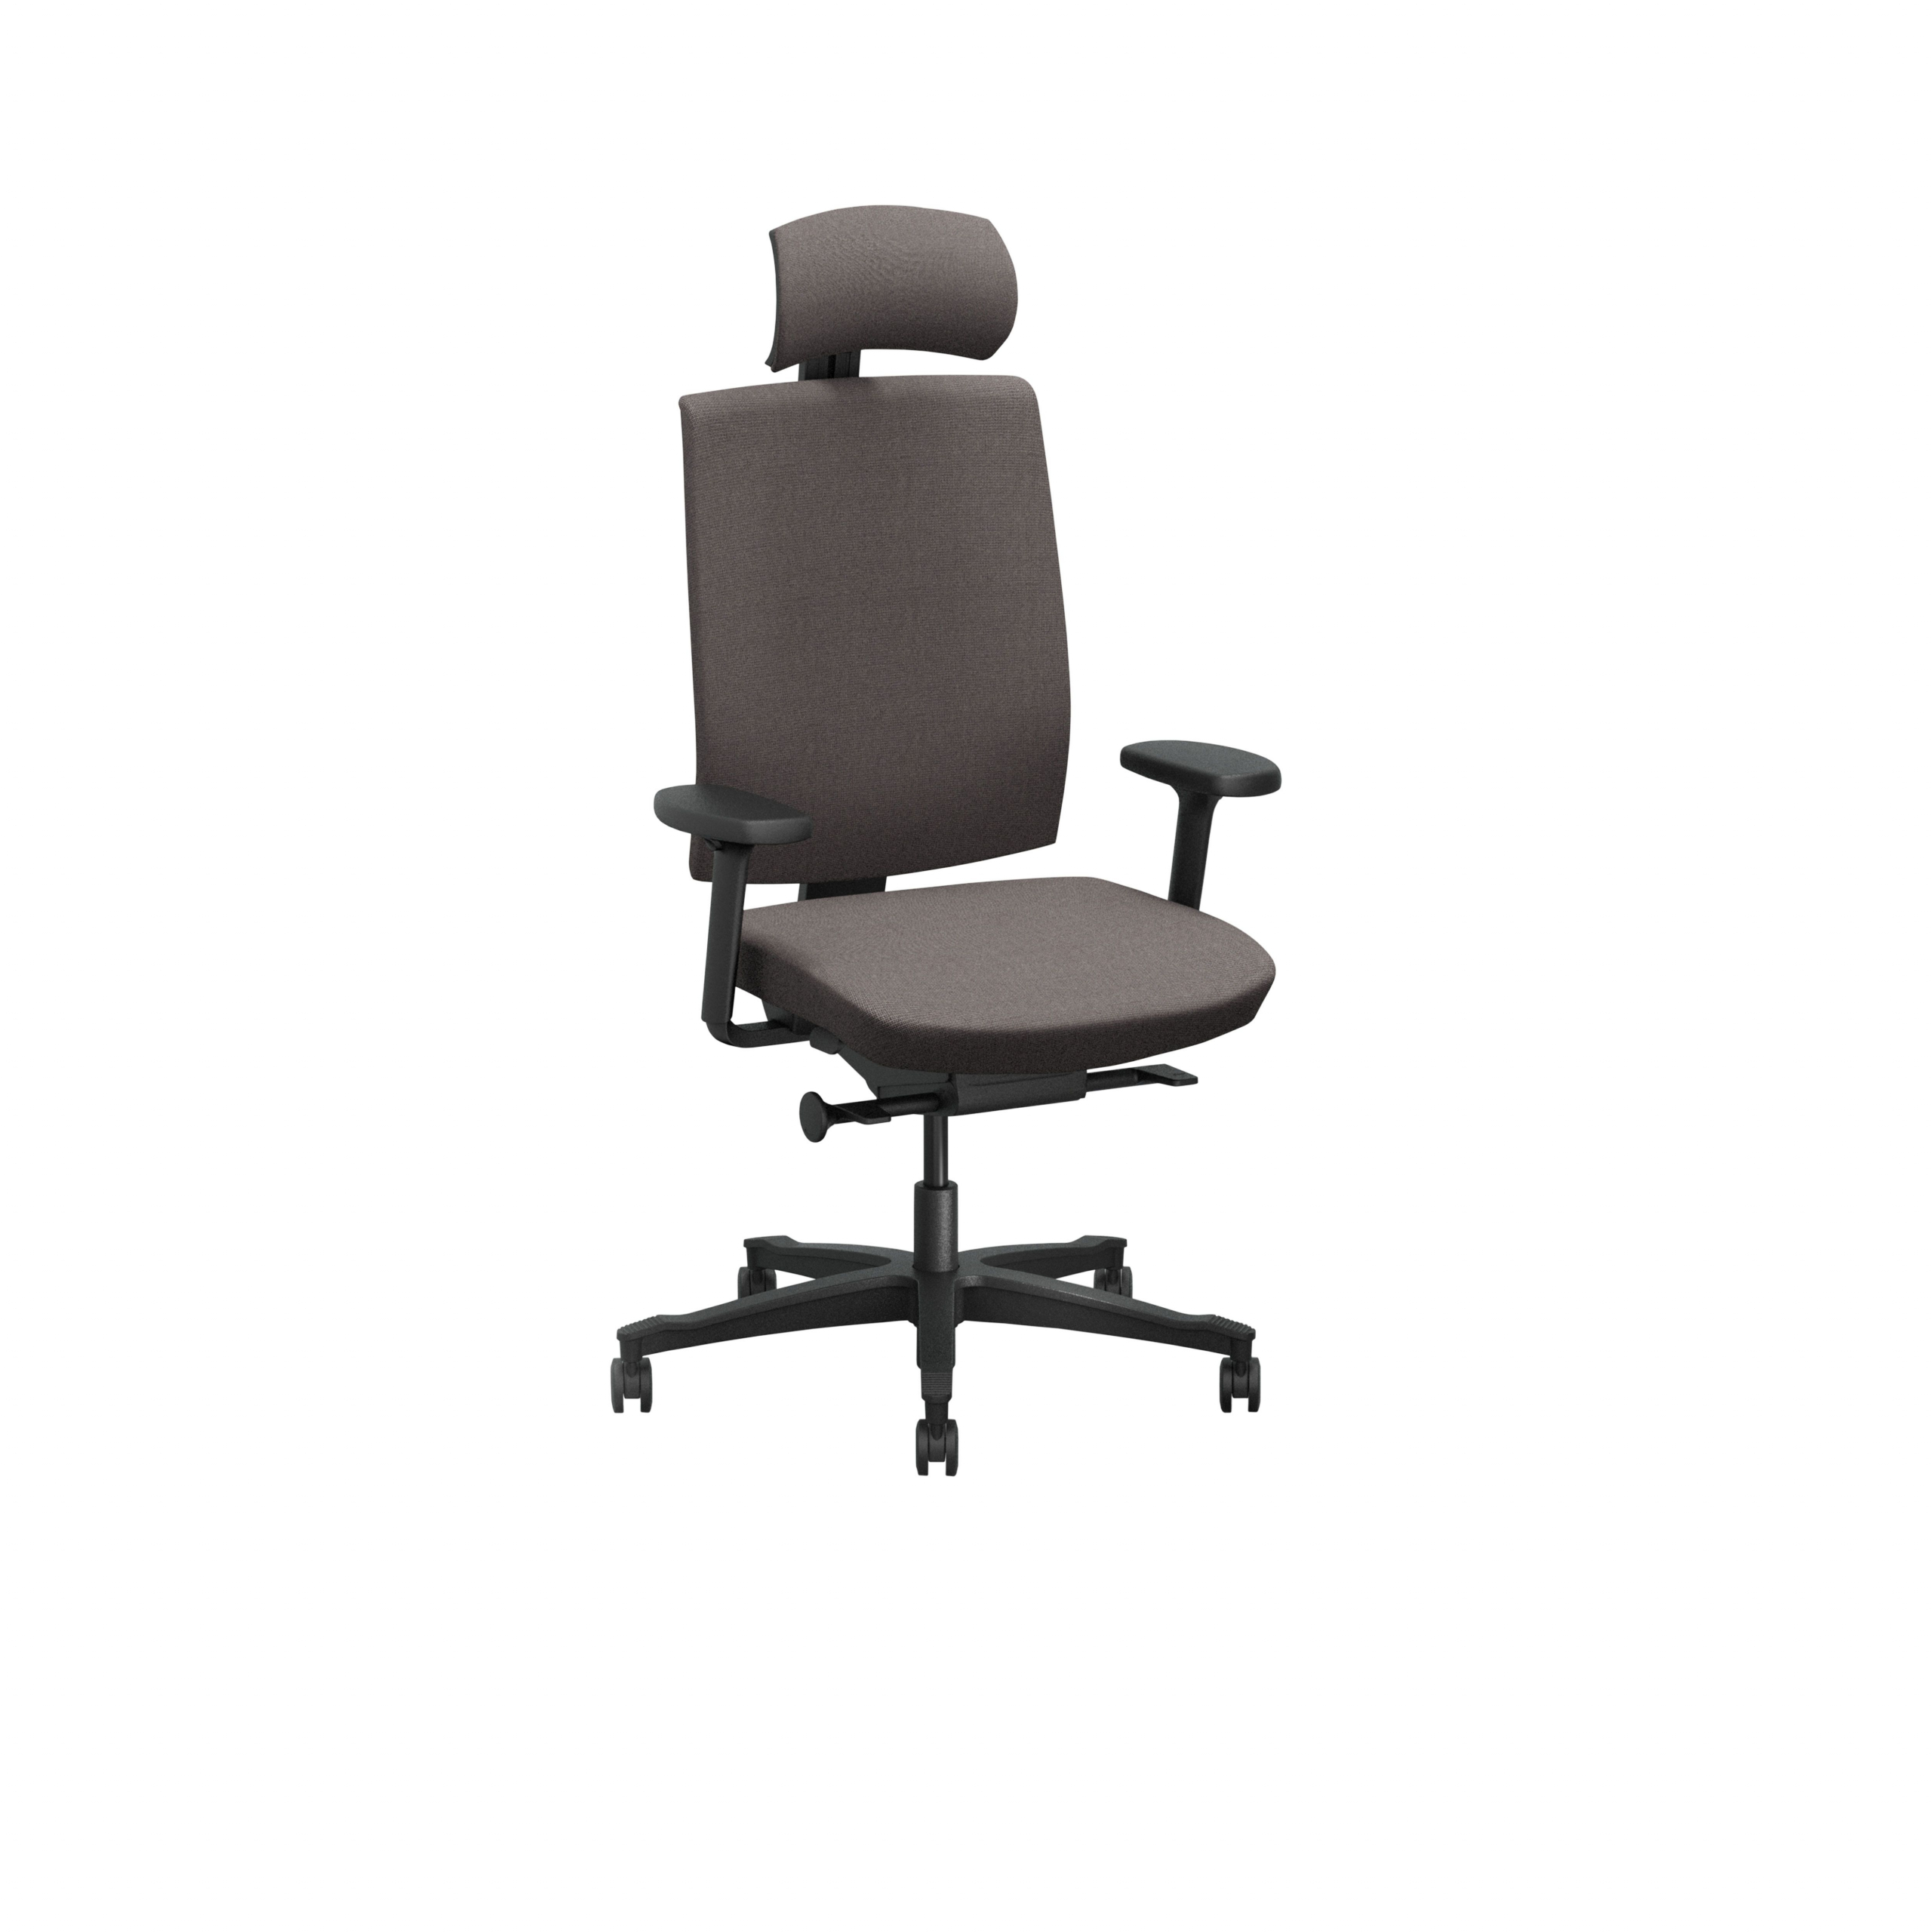 One Office chair with upholstered back